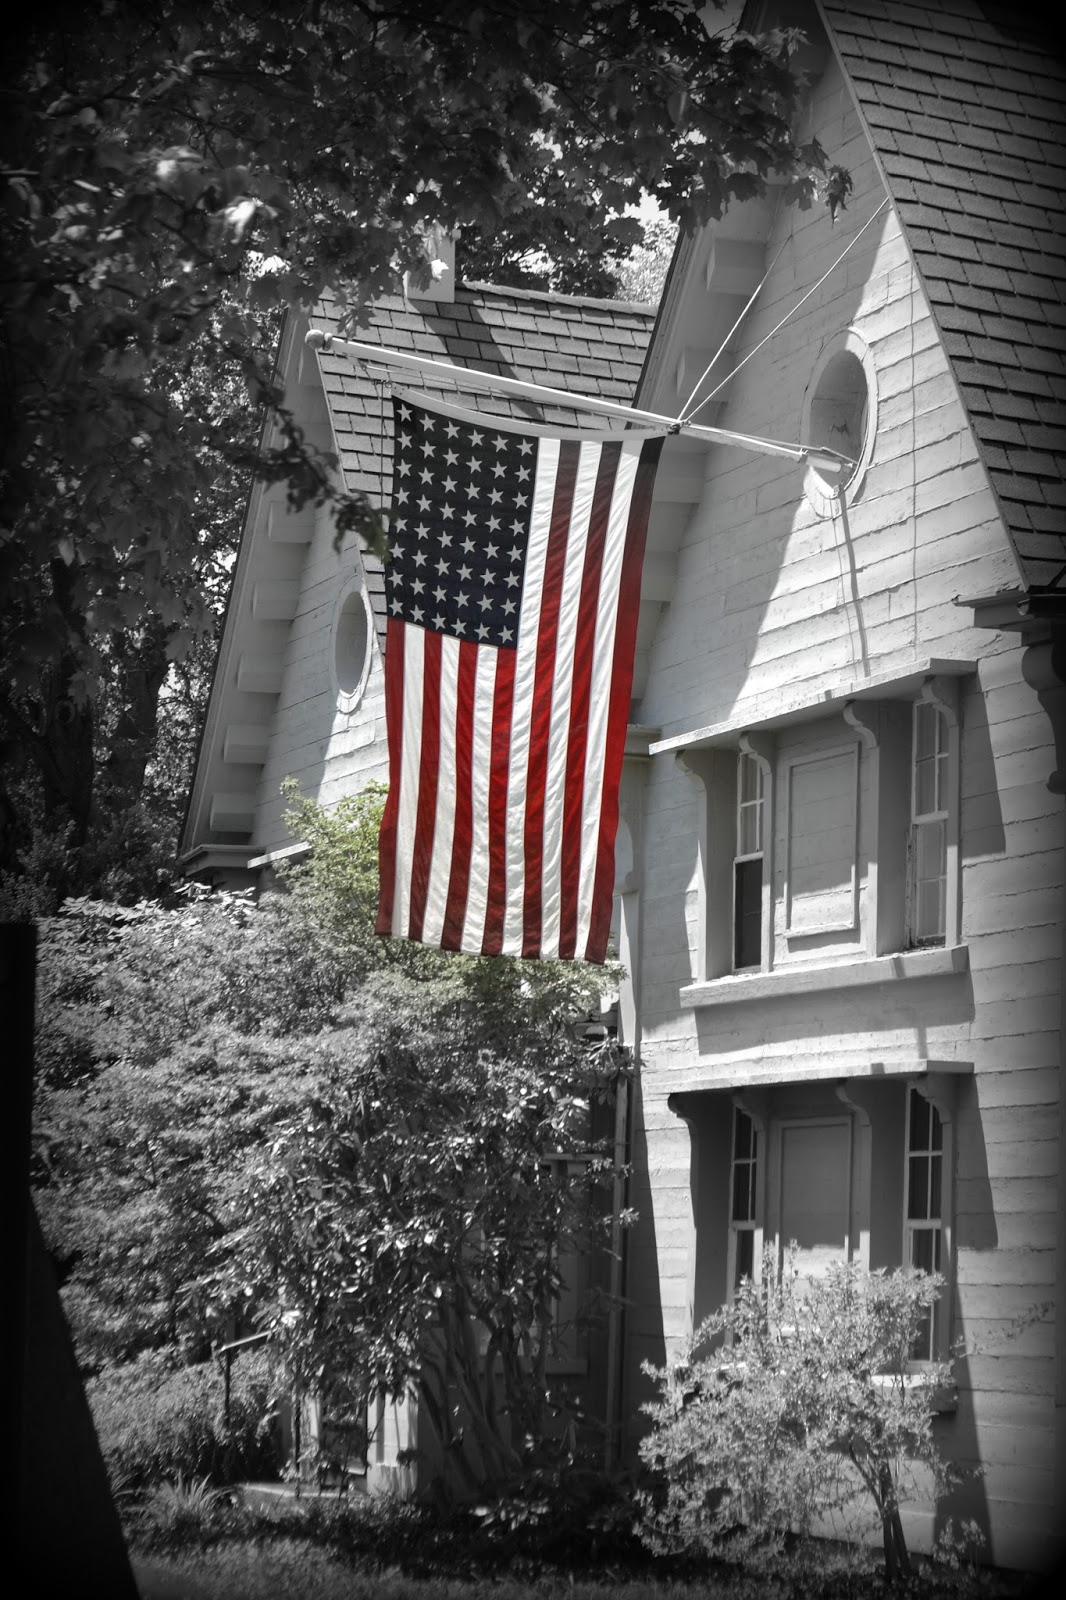 48 stars, flag, united states, 4th of july, independence day, 2014, salem, massachusetts